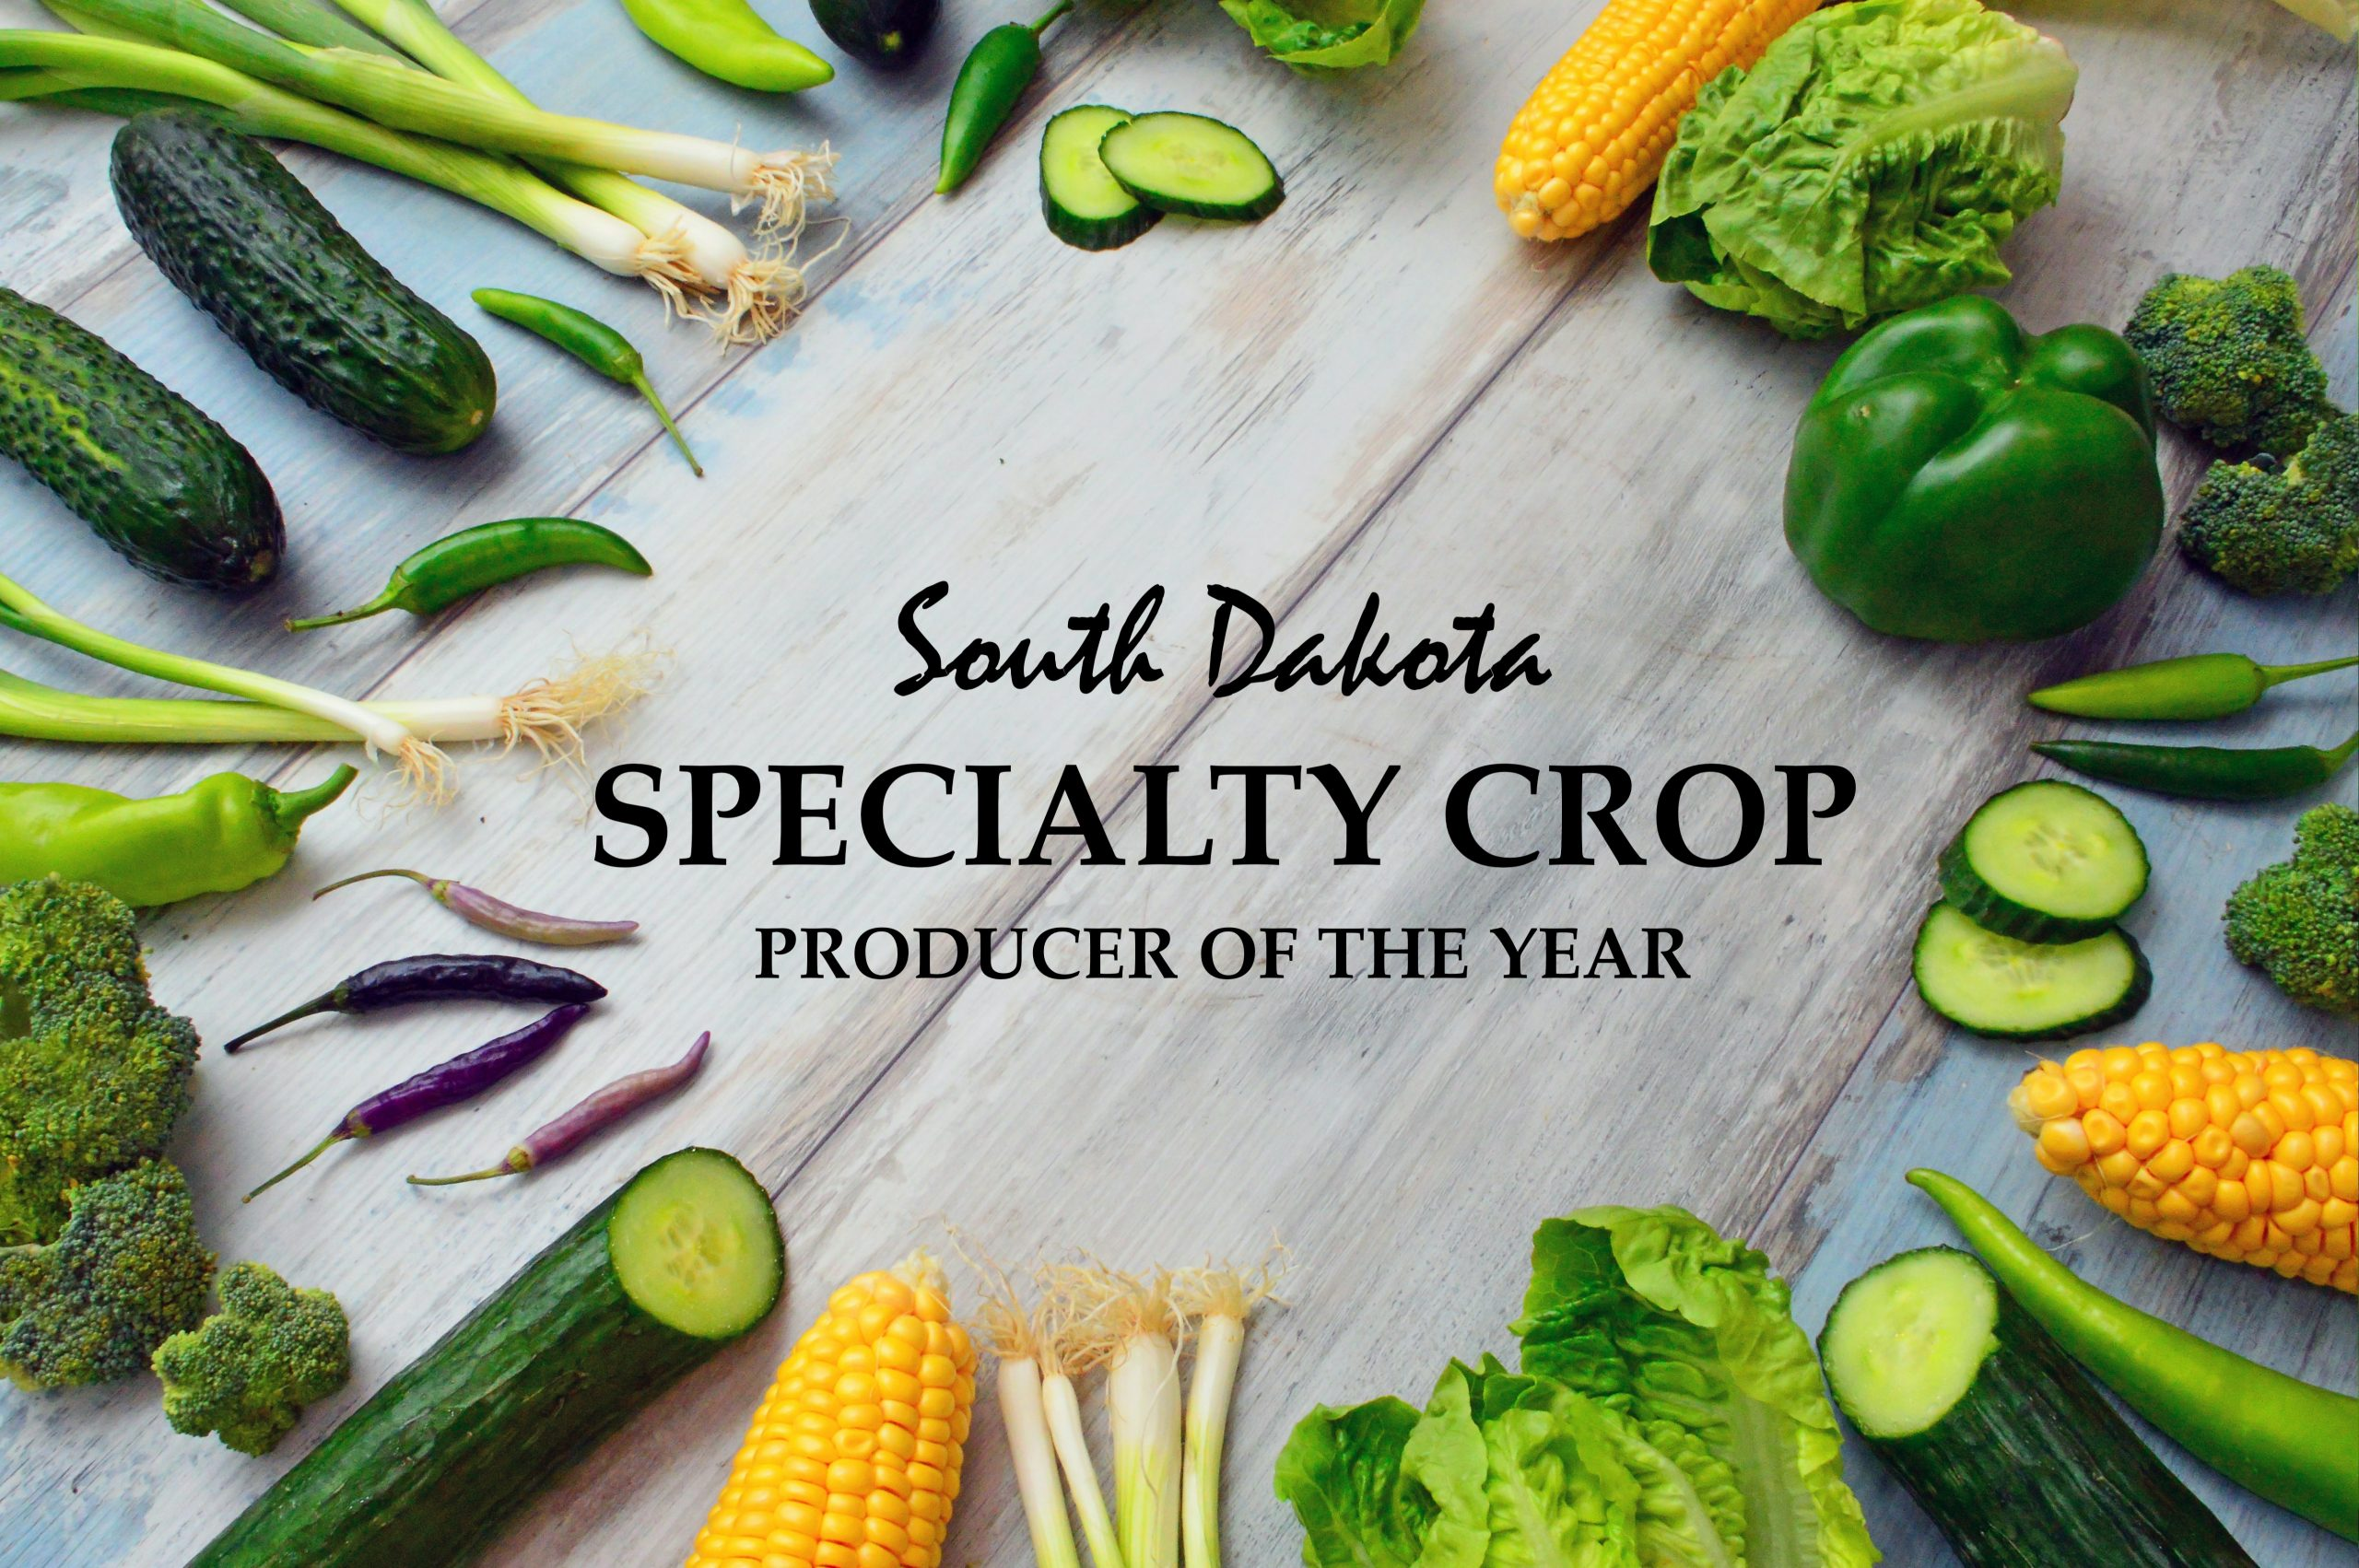 Seeking Nominations for S.D. Specialty Crop Producer of the Year